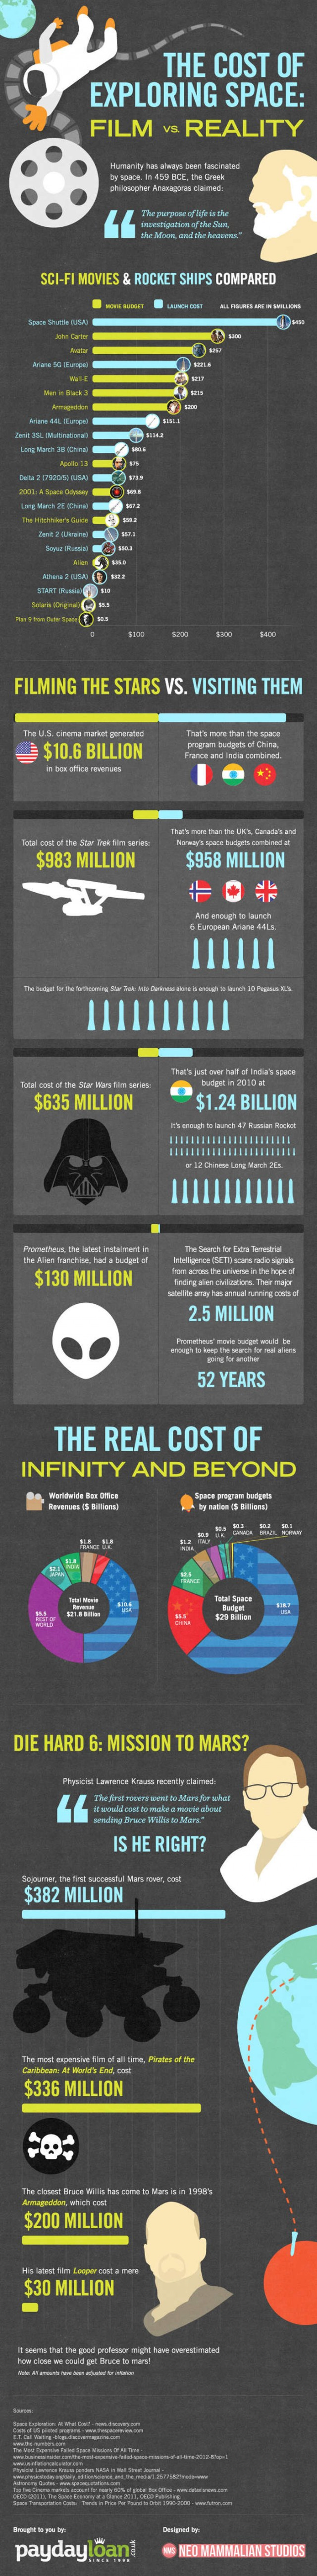 The Cost of Exploring Space